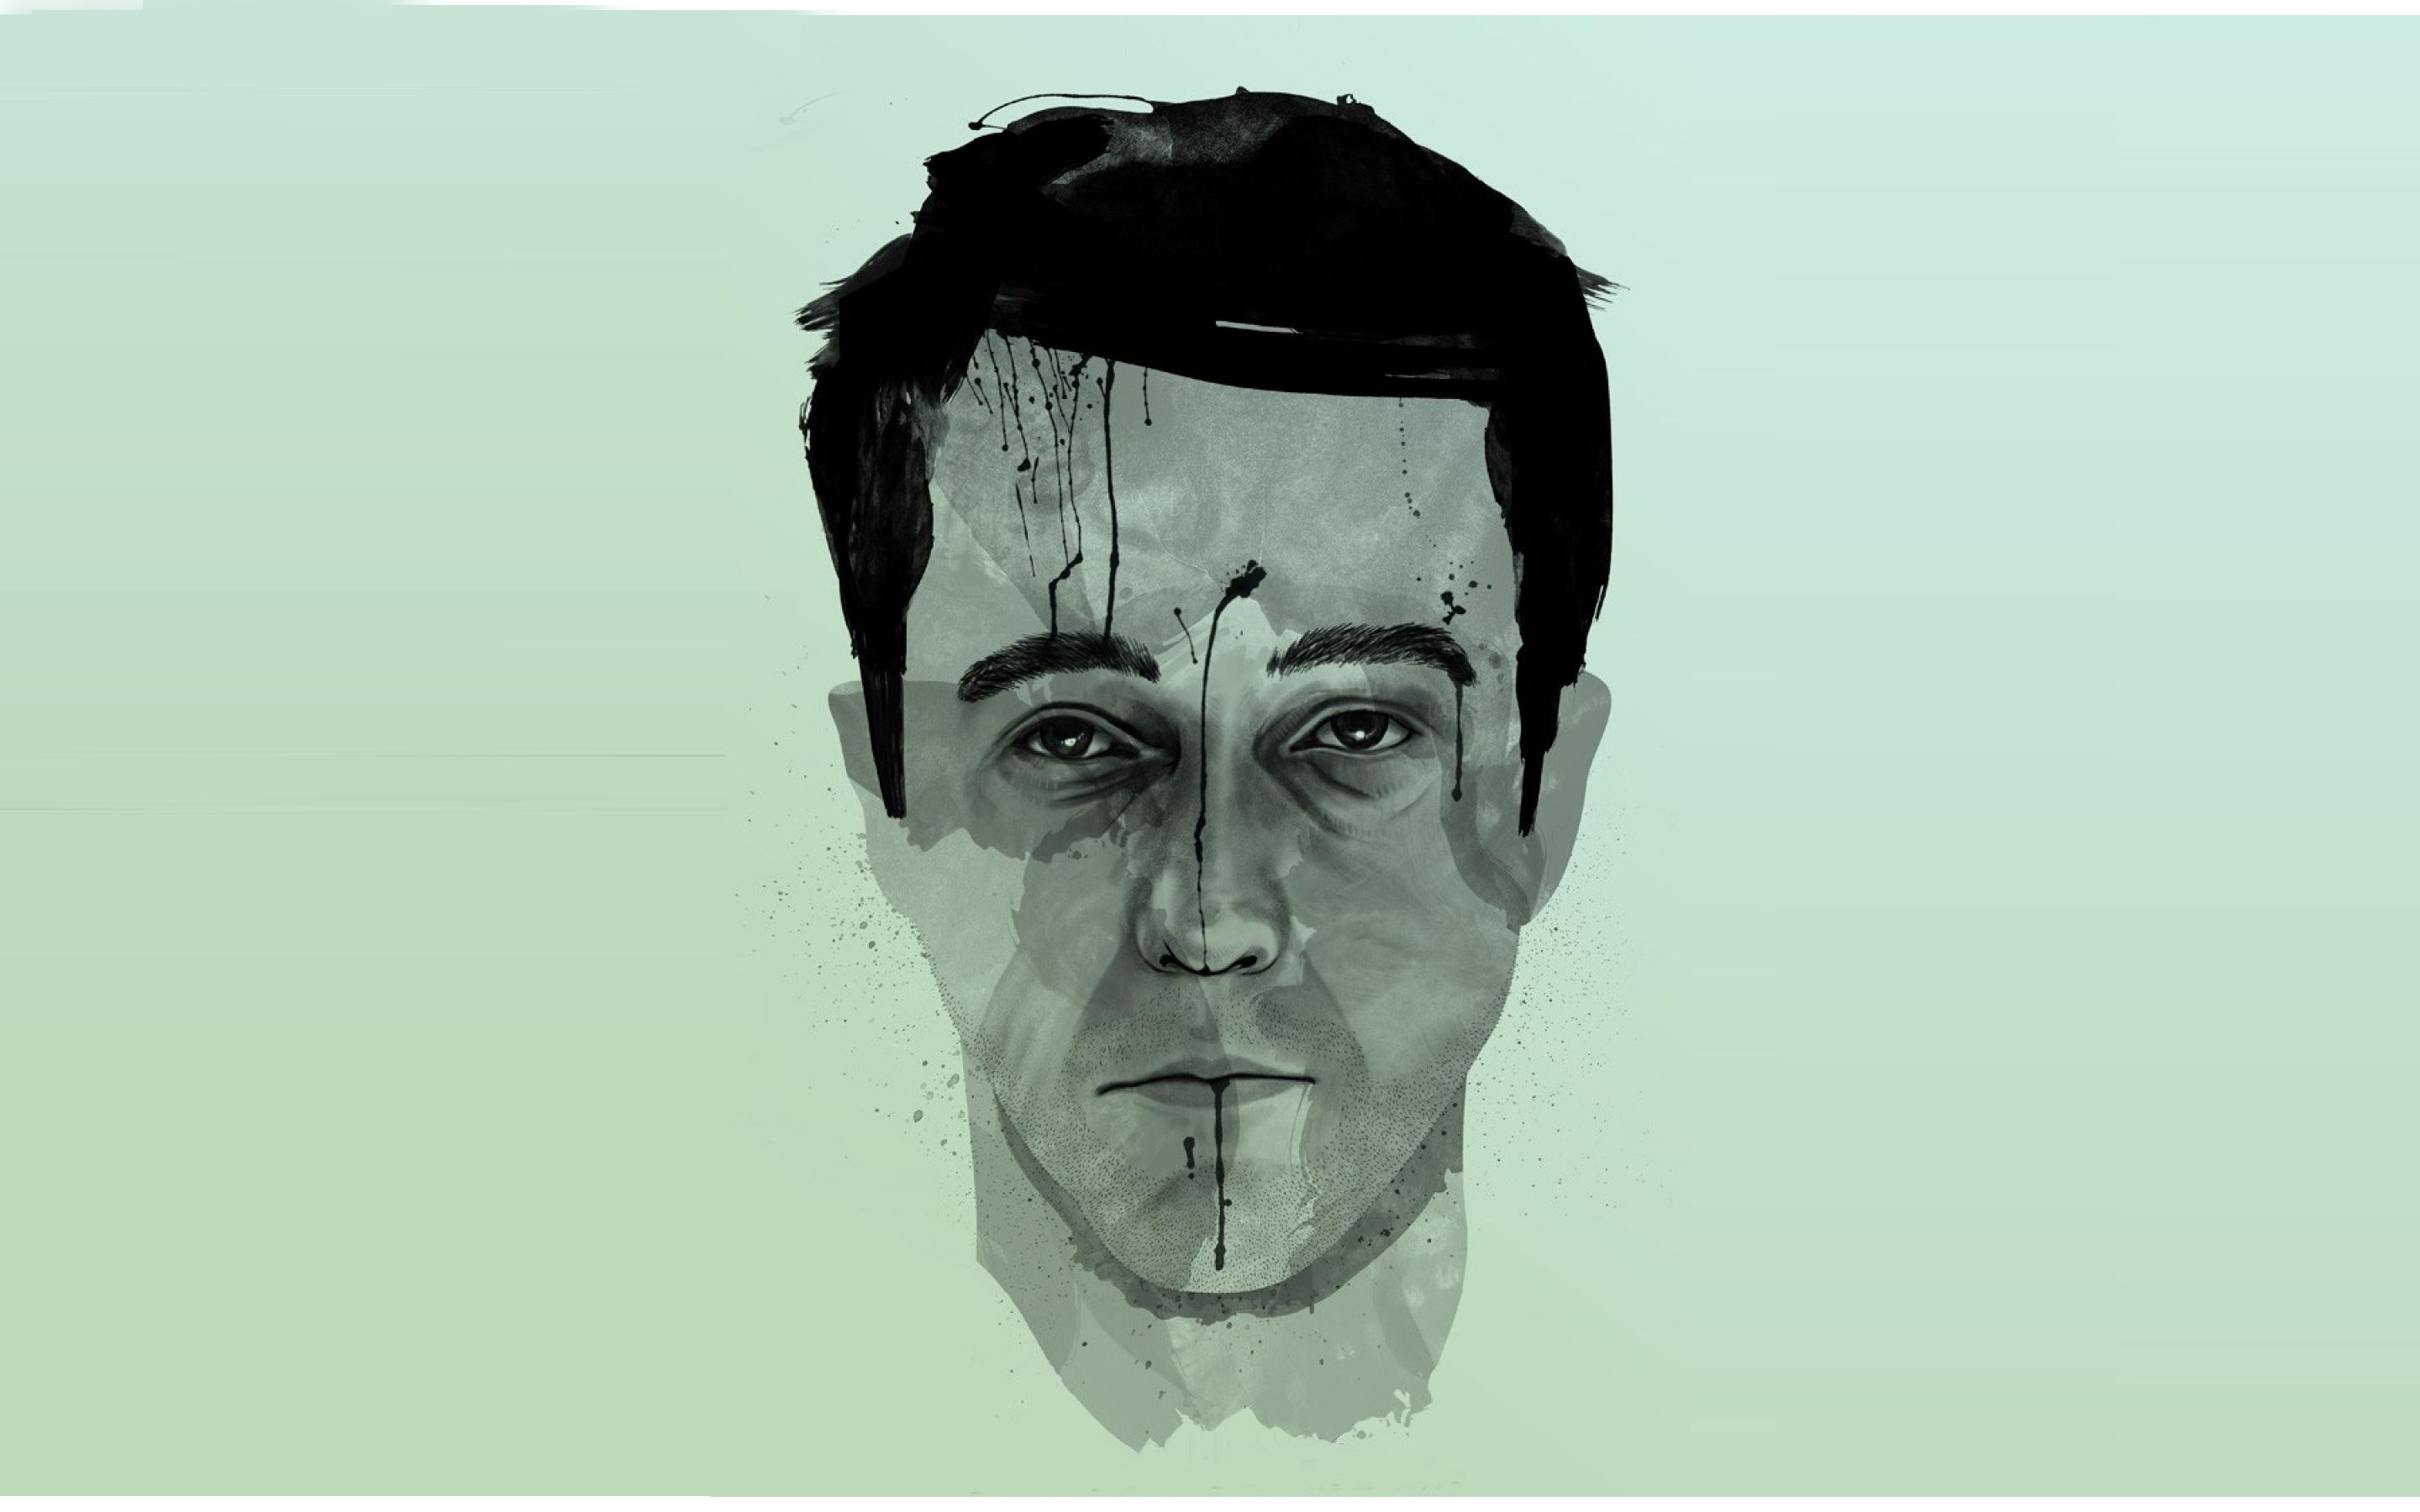 Fight Club Wallpaper 71 Images